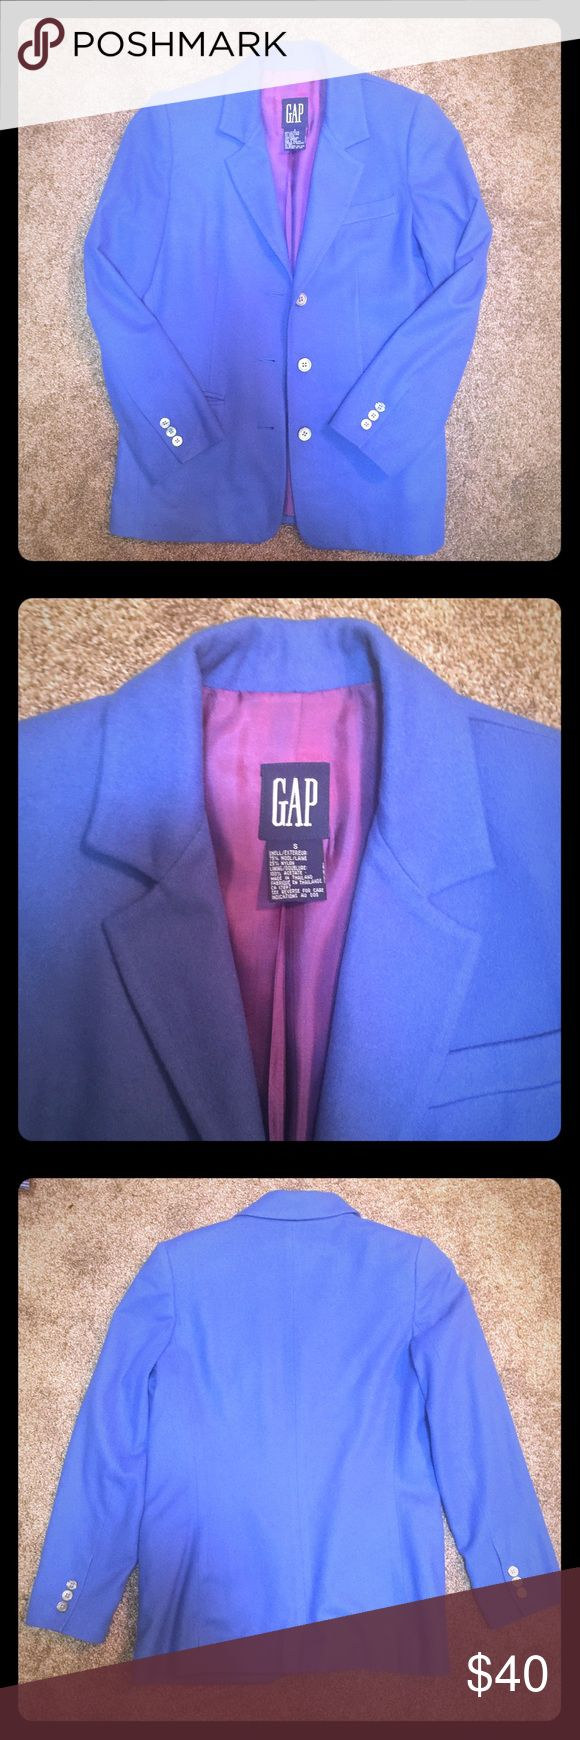 GAP Royal Blue Wool Blazer Excellent condition! 75% wool and 25% nylon. Always willing to negotiate price and bundles (20% off)!😊 GAP Jackets & Coats Blazers